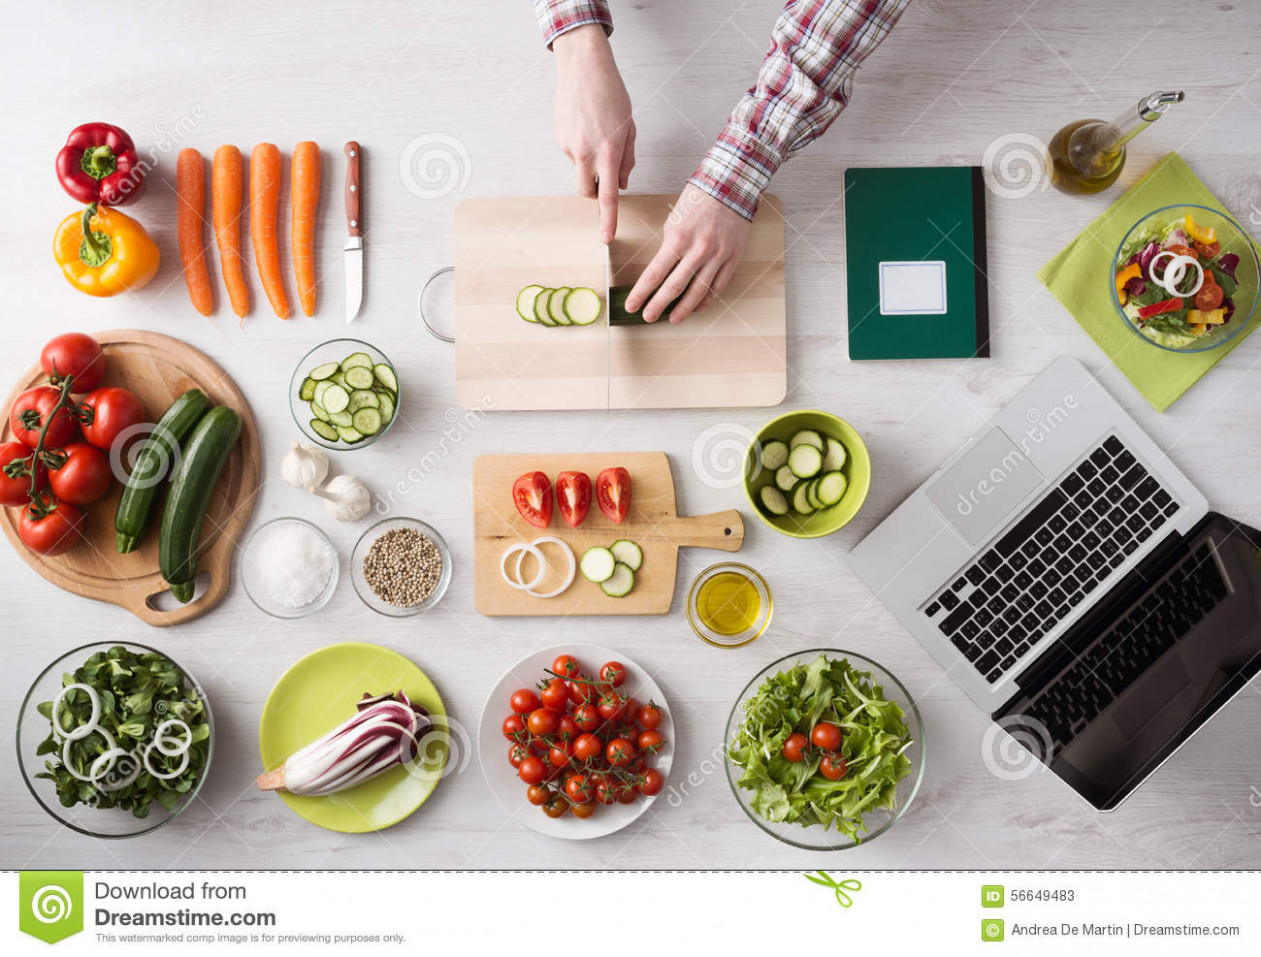 Cooking At Home With Online Recipes Stock Image – Image Of …